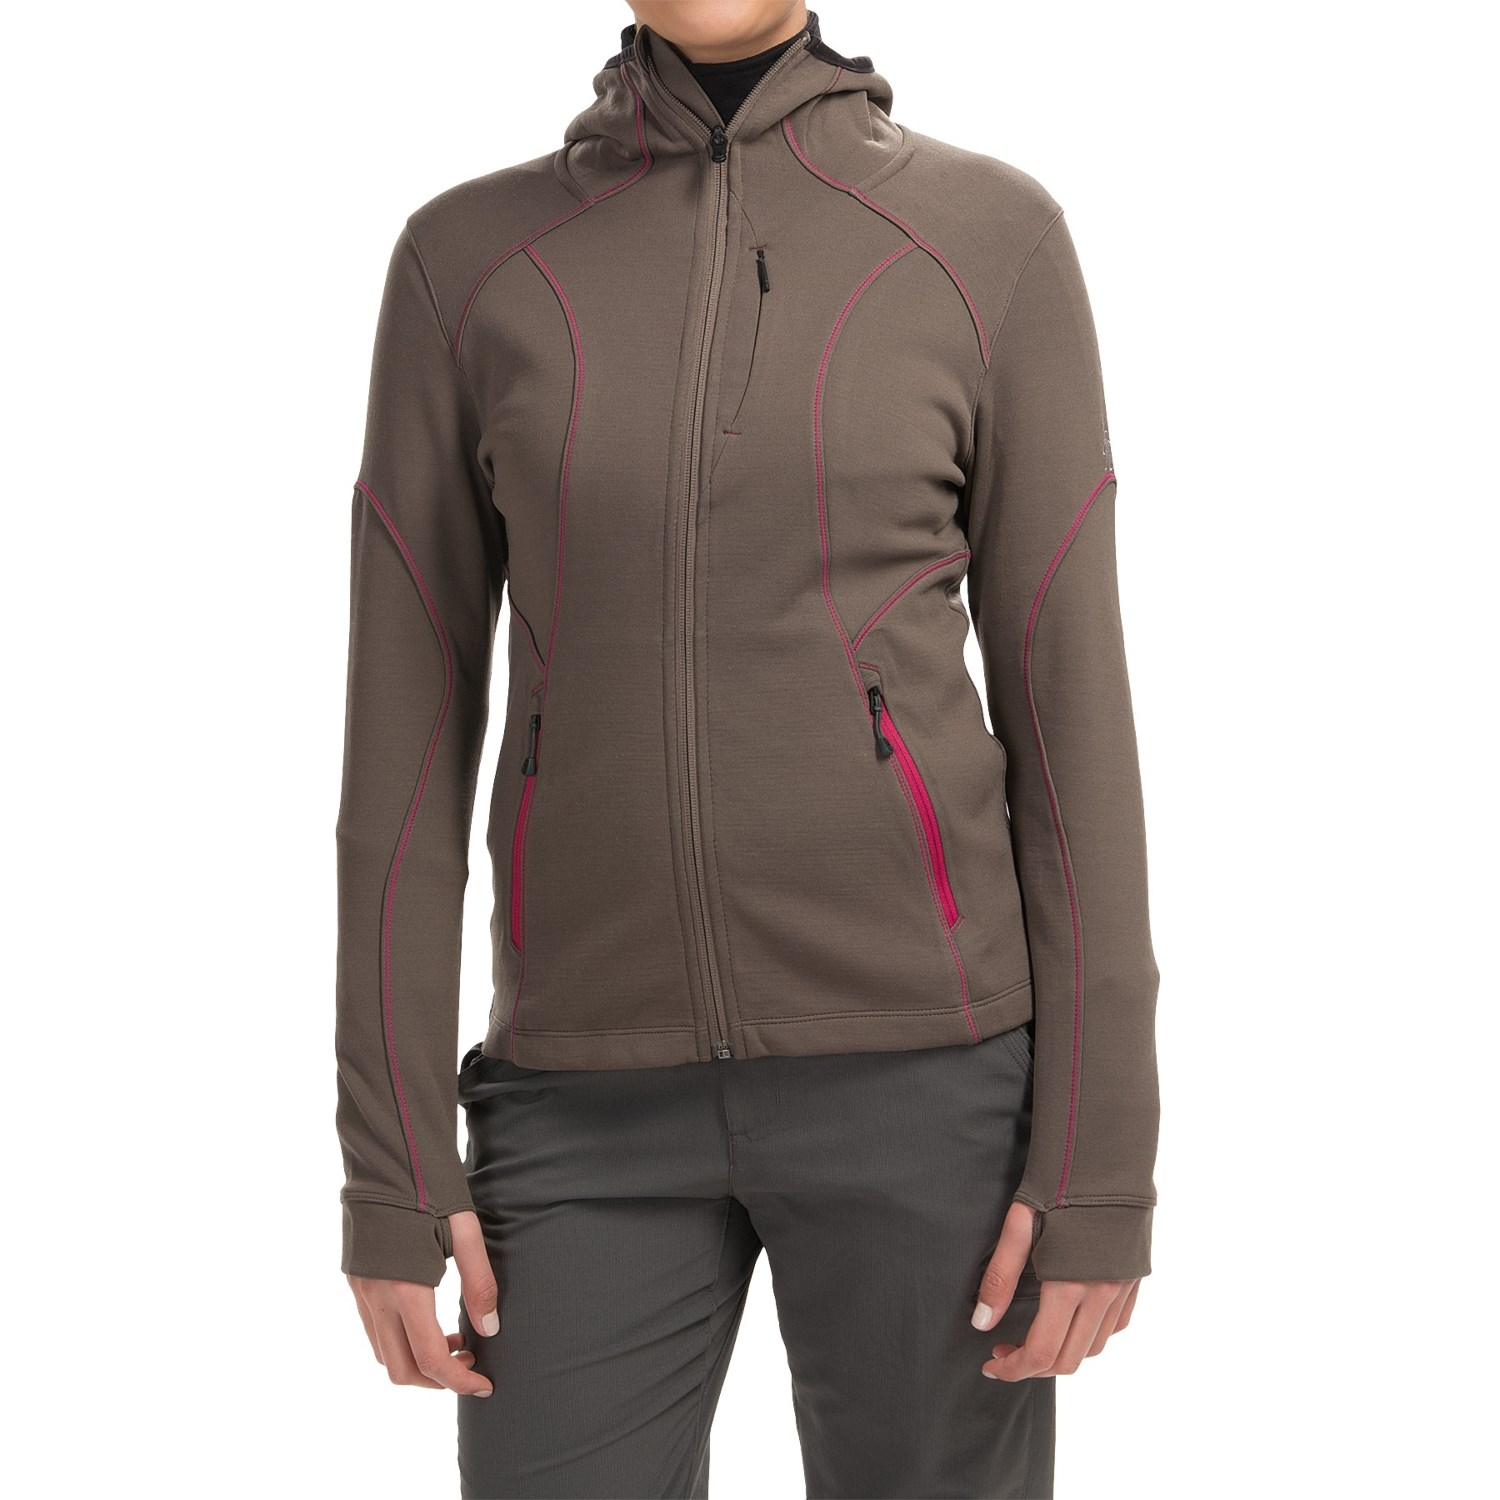 Smartwool 2013 phd hyfi hooded shirt for women for Merino wool shirt womens